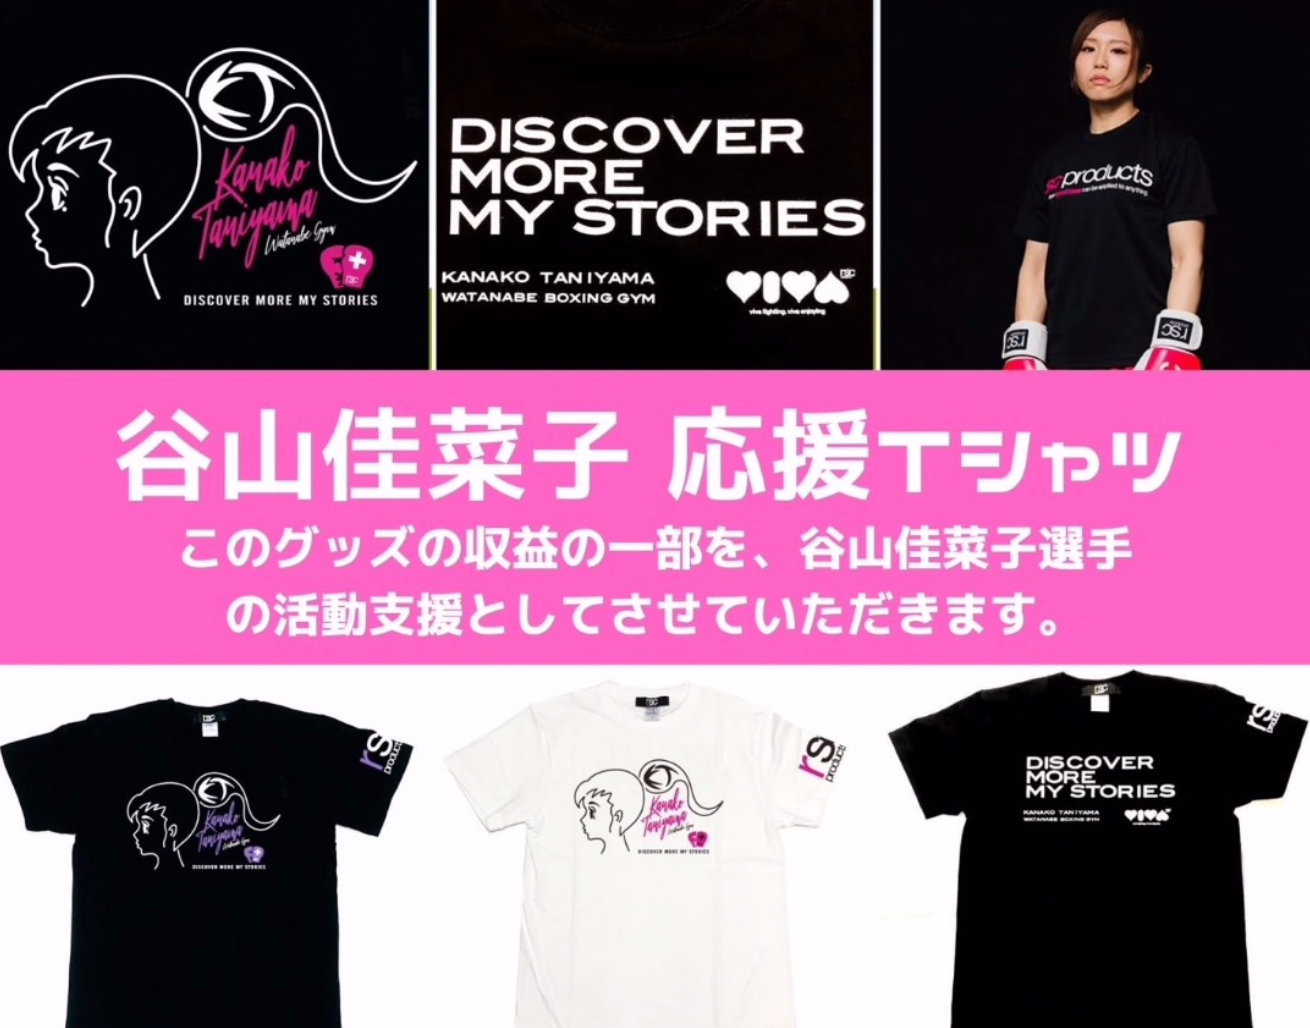 DISCOVER MORE MY STORIES★ 信じた道をまっすぐに 画像5|rsc products公式ウェブサイト